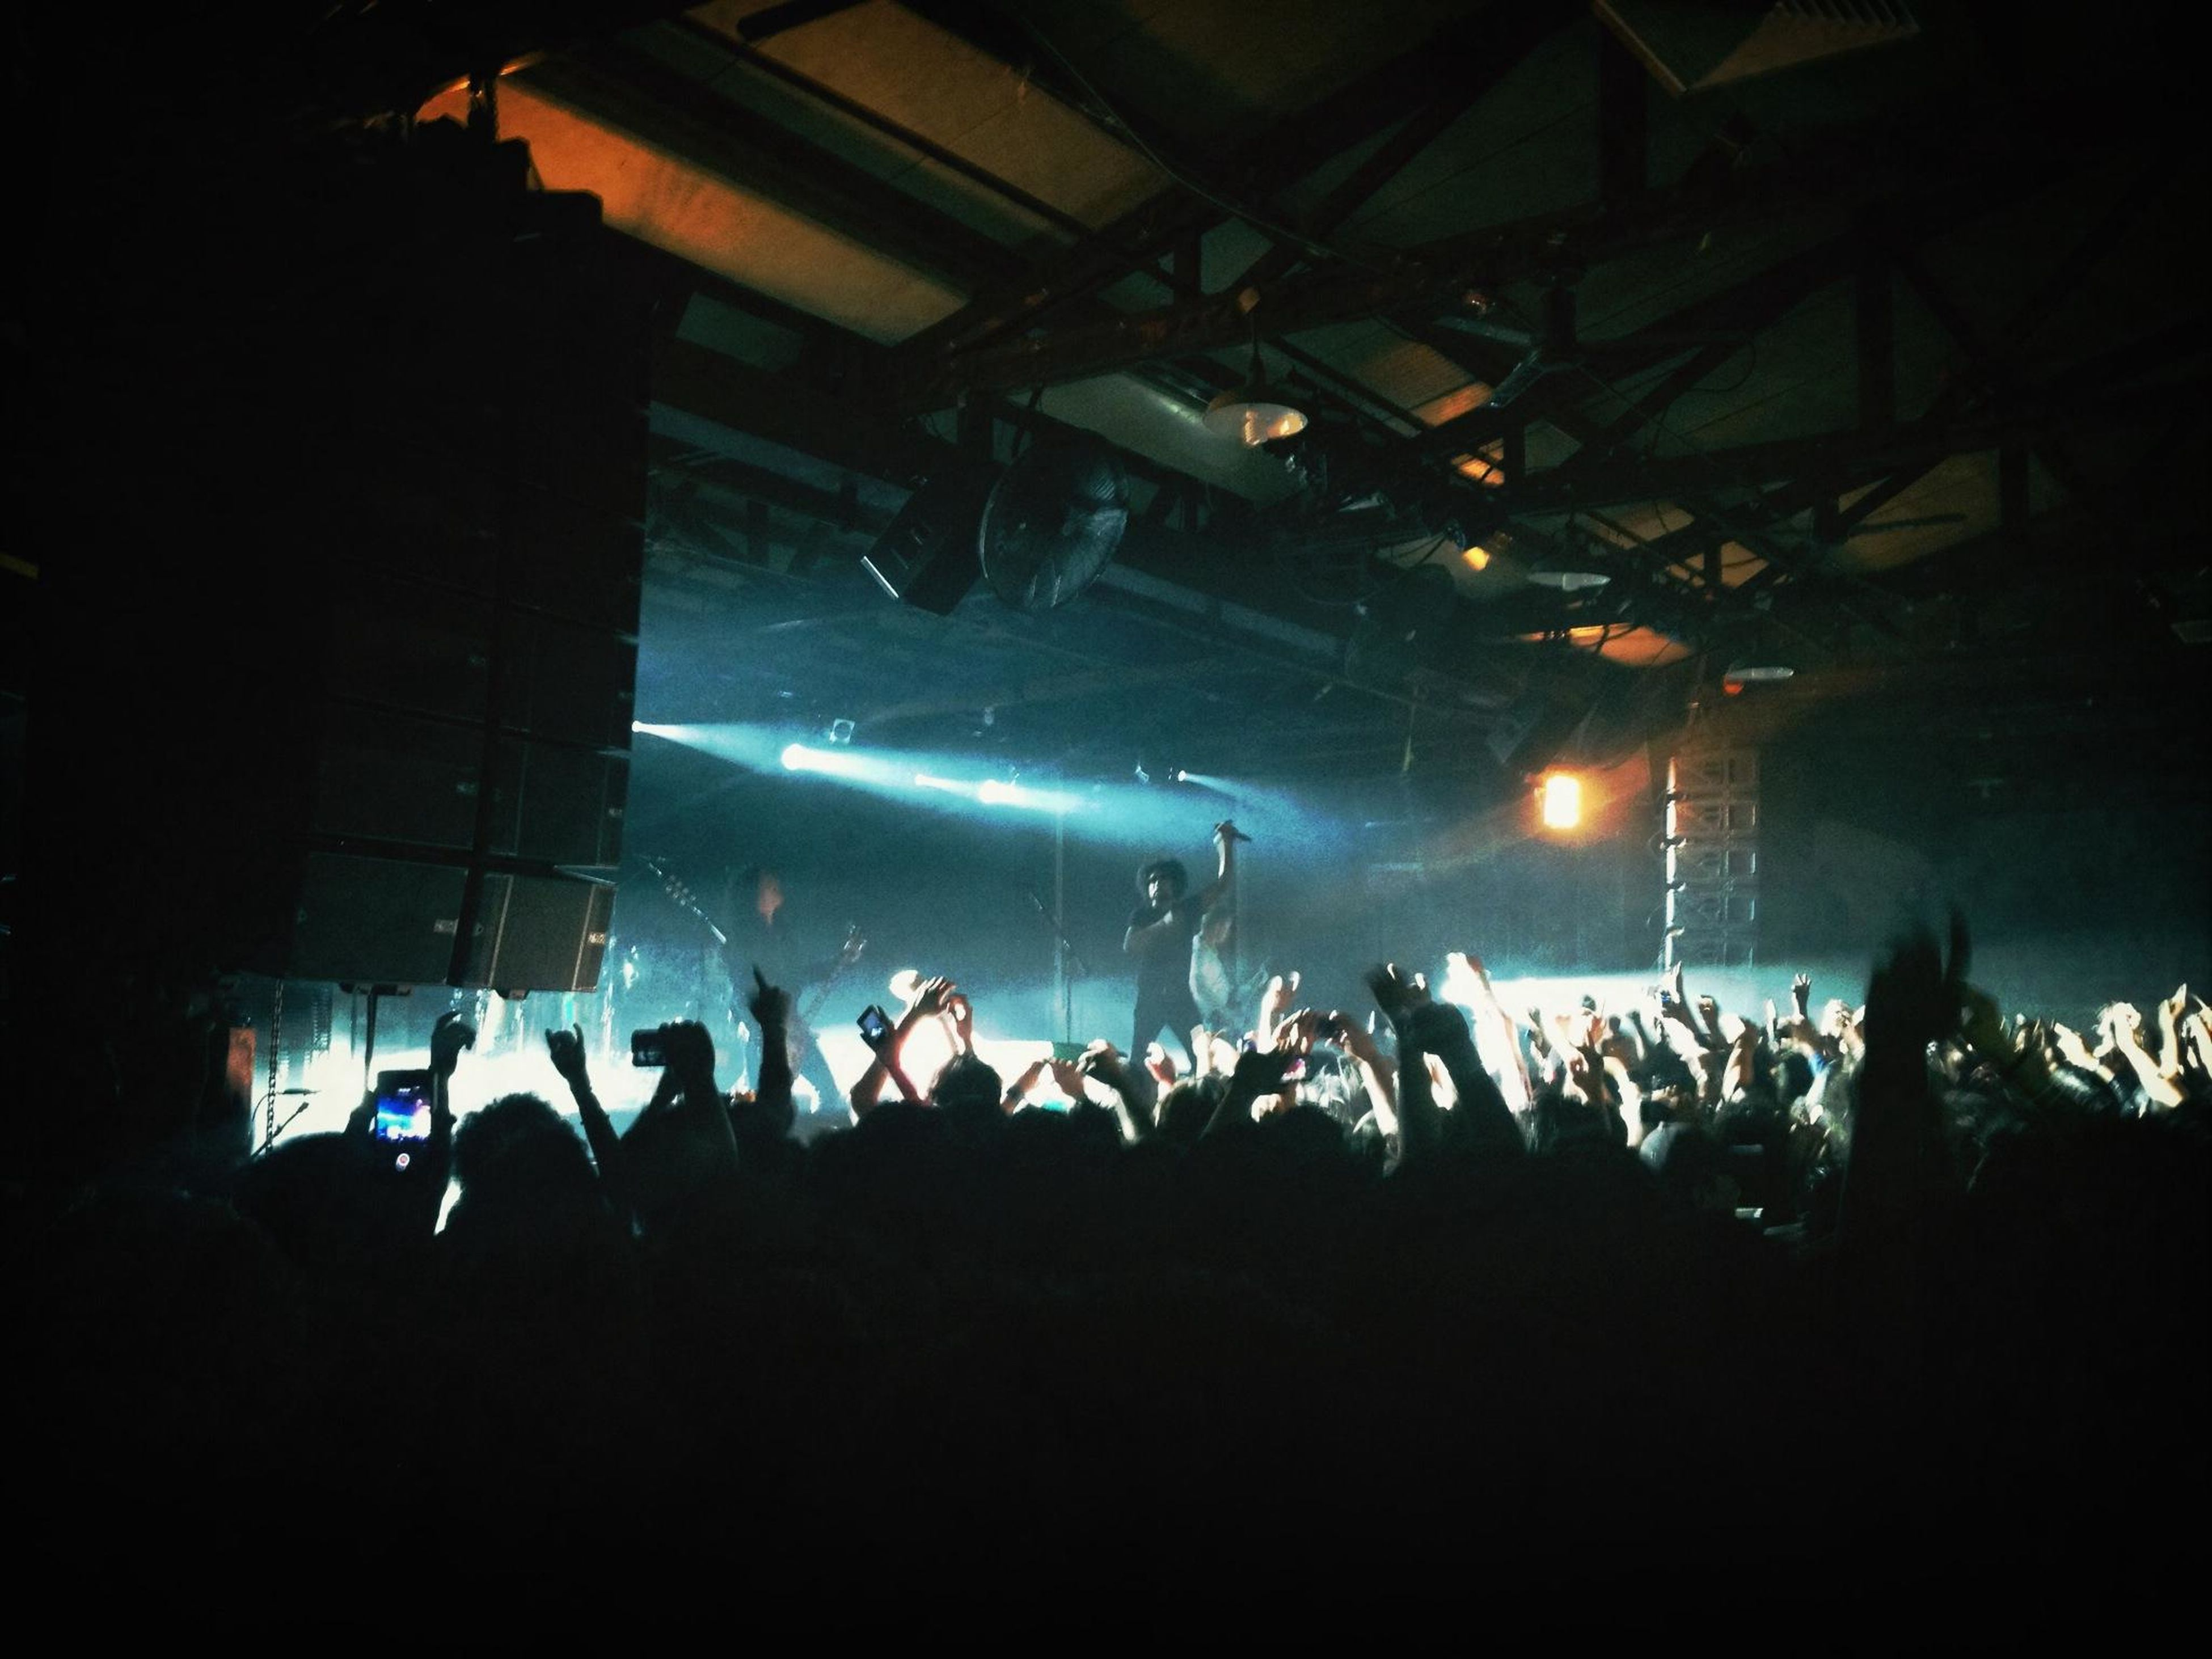 large group of people, illuminated, crowd, indoors, person, night, men, lifestyles, performance, arts culture and entertainment, music, nightlife, stage - performance space, leisure activity, stage light, popular music concert, event, concert